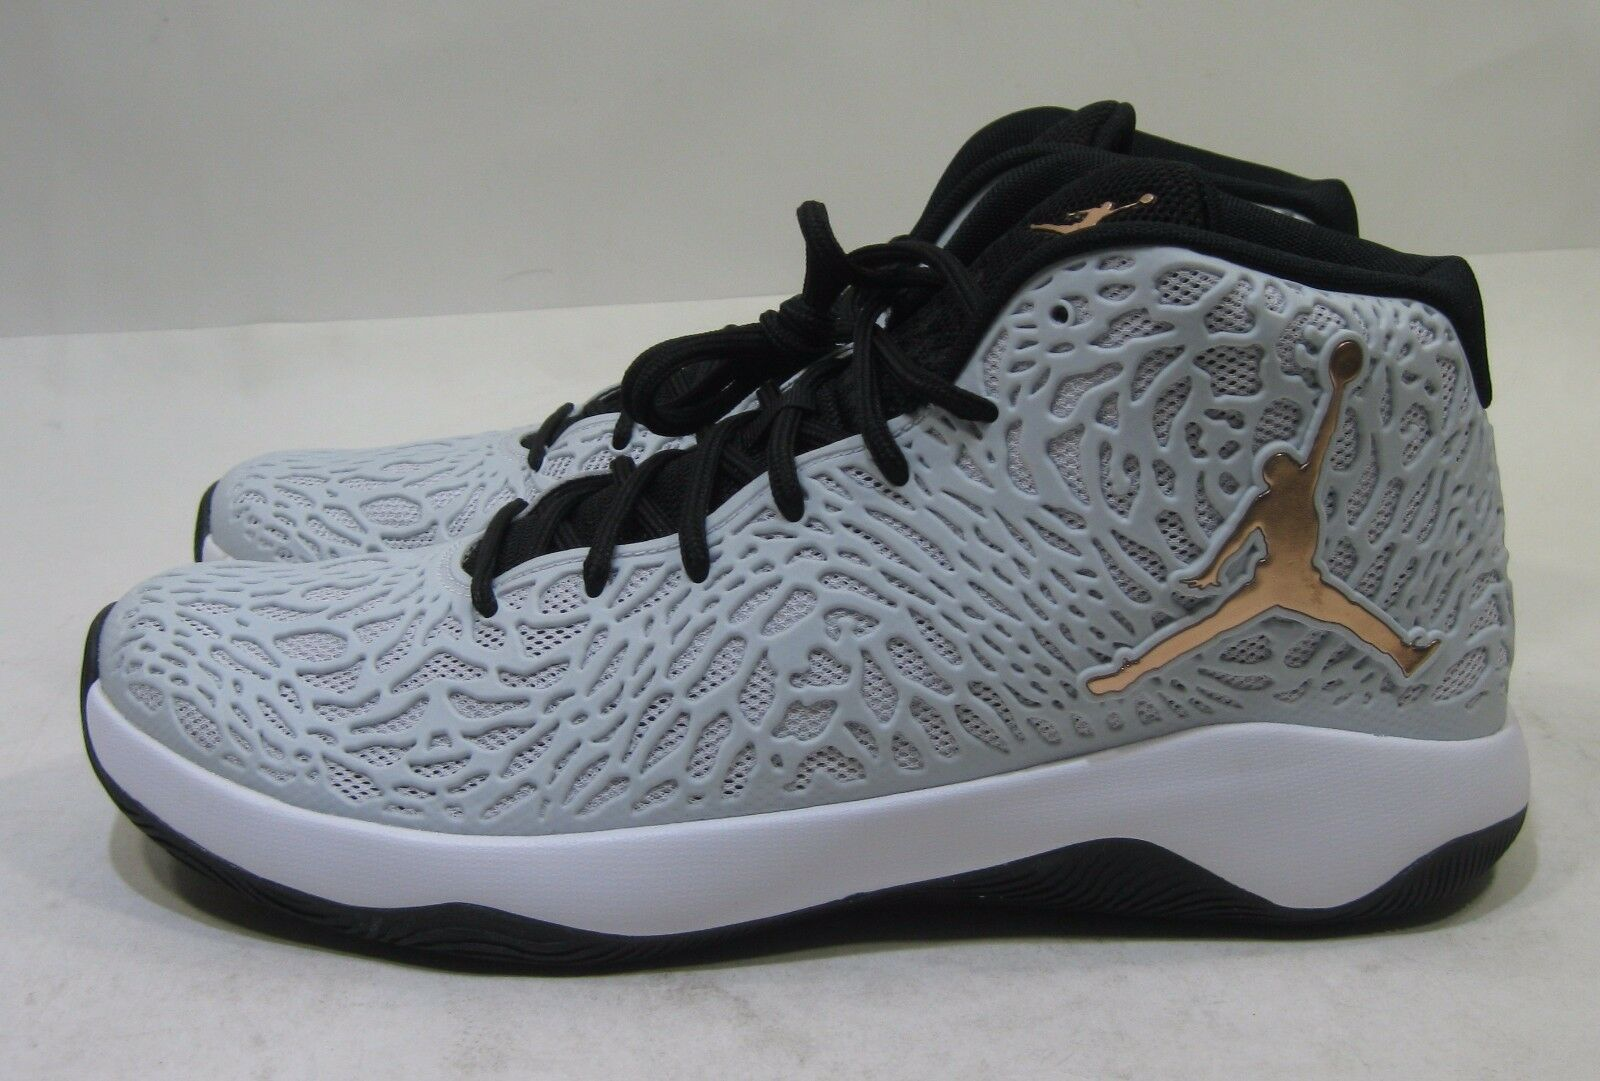 nouveau 2016 jun nike air air air jordan ultra voler   baskets 834268-113 taille 12 188bdc